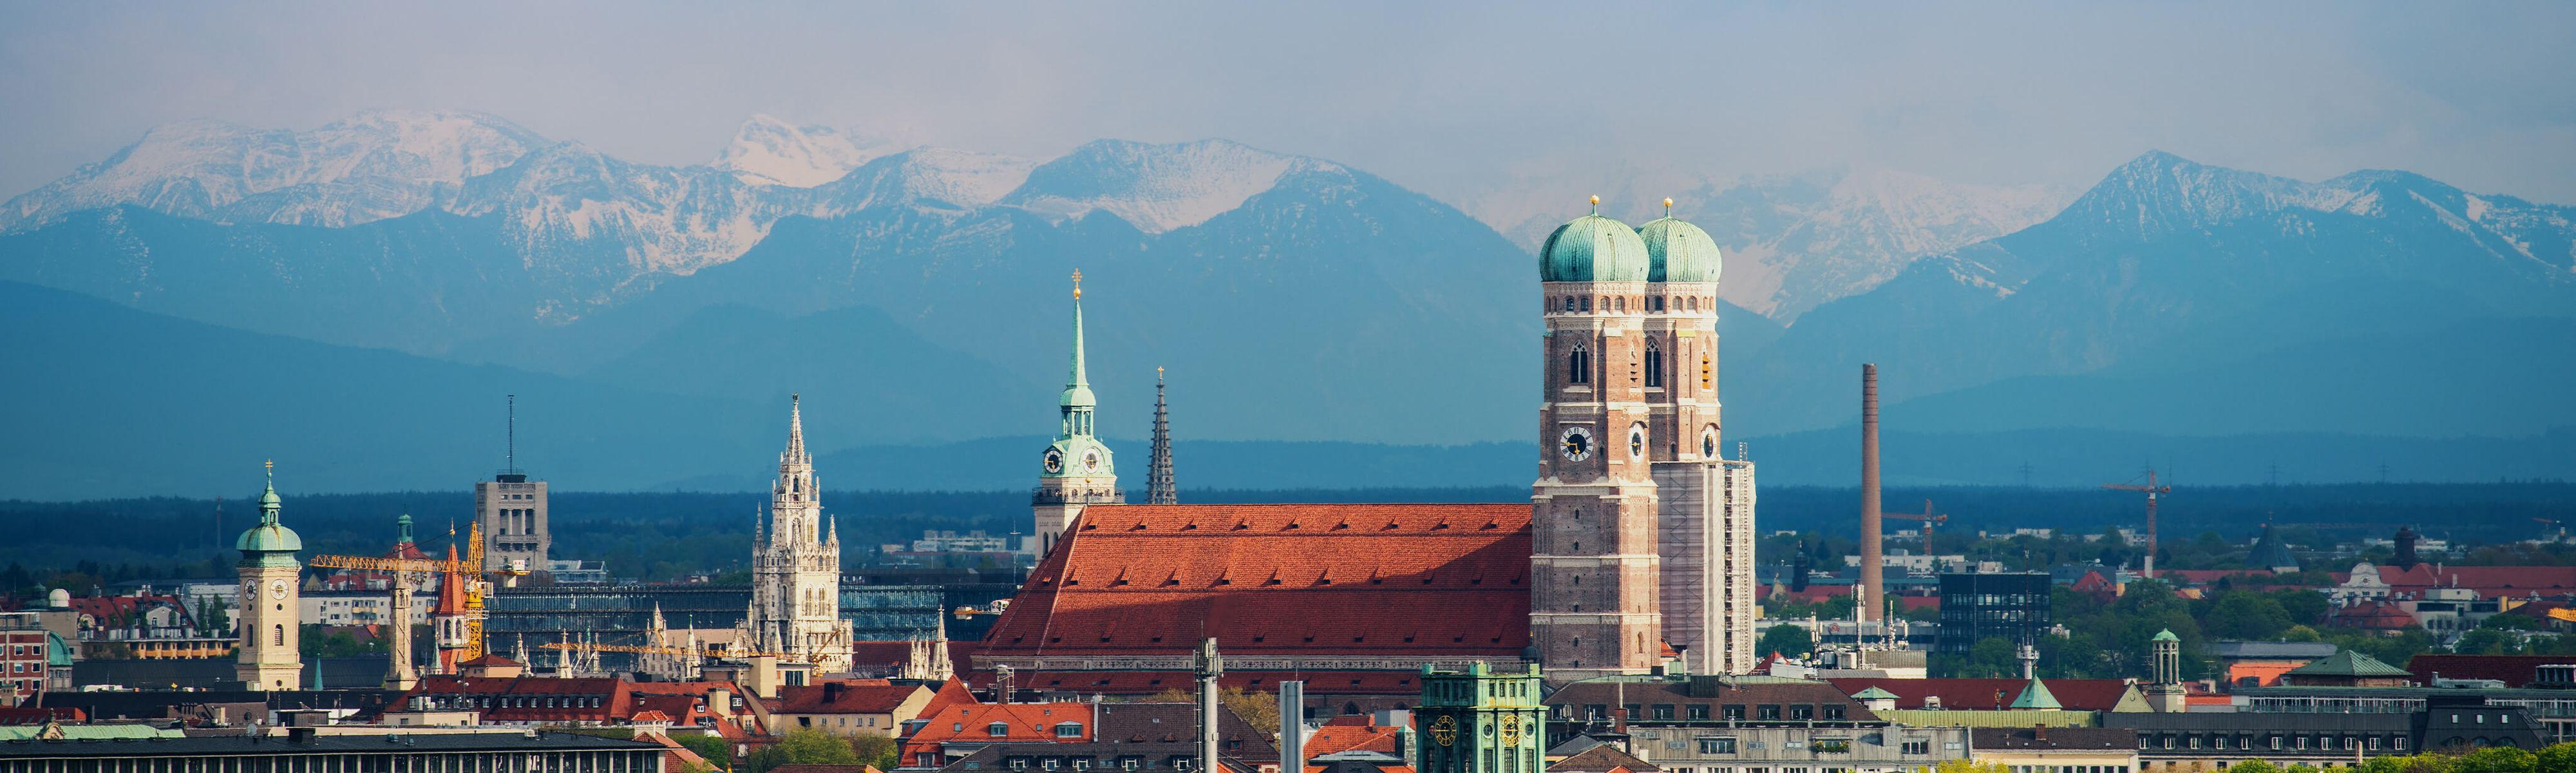 green domed building surrounded by snow capped mountains in munich germany